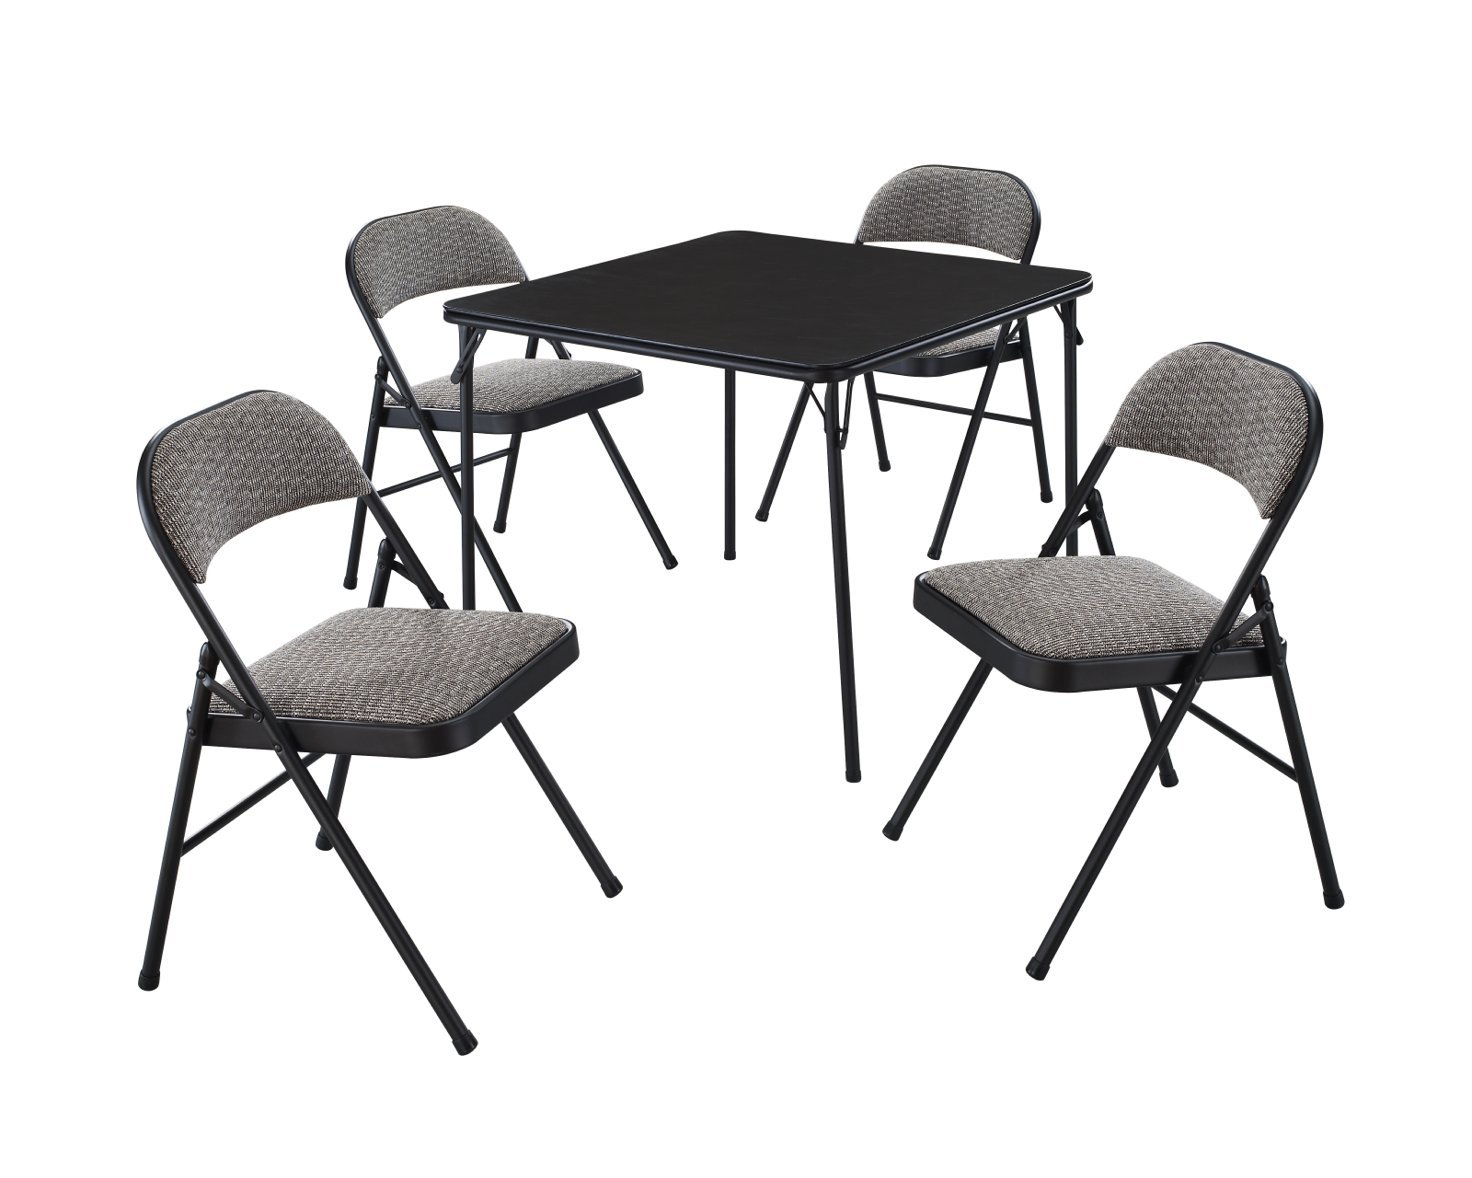 MECO 5-Piece Folding Table and Chair Set, Black Lace Frame and Courtyard Upholstery by MECO